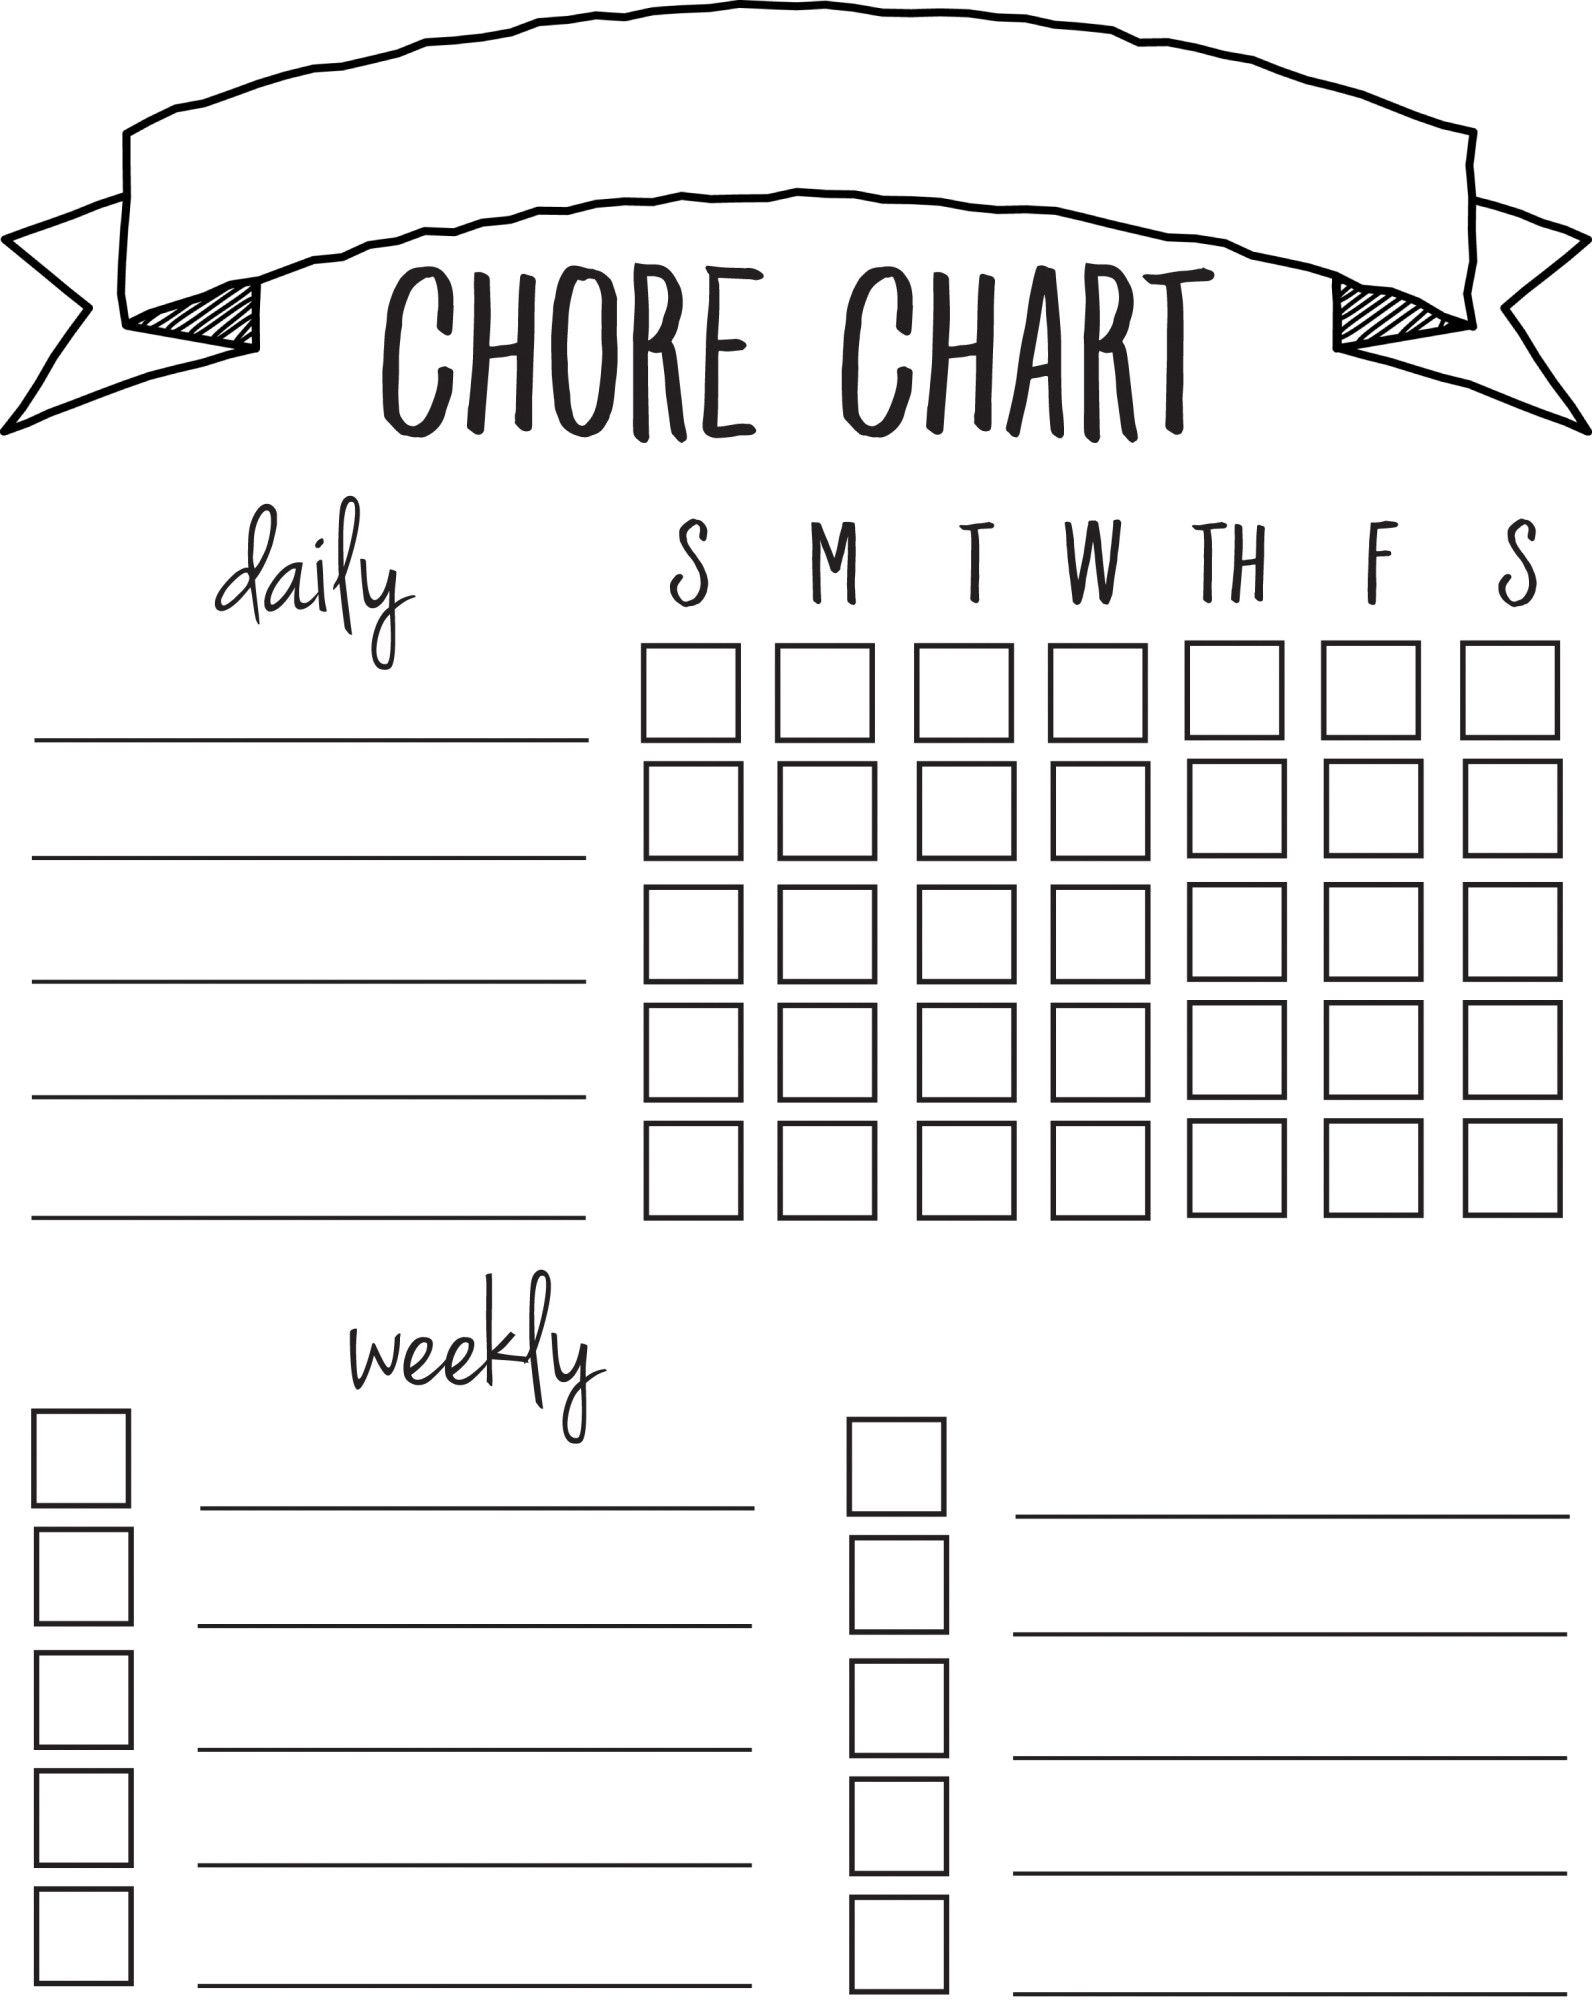 Diy Printable Chore Chart | Free Printables Nov/feb | Pinterest - Chore Chart For Adults Printable Free